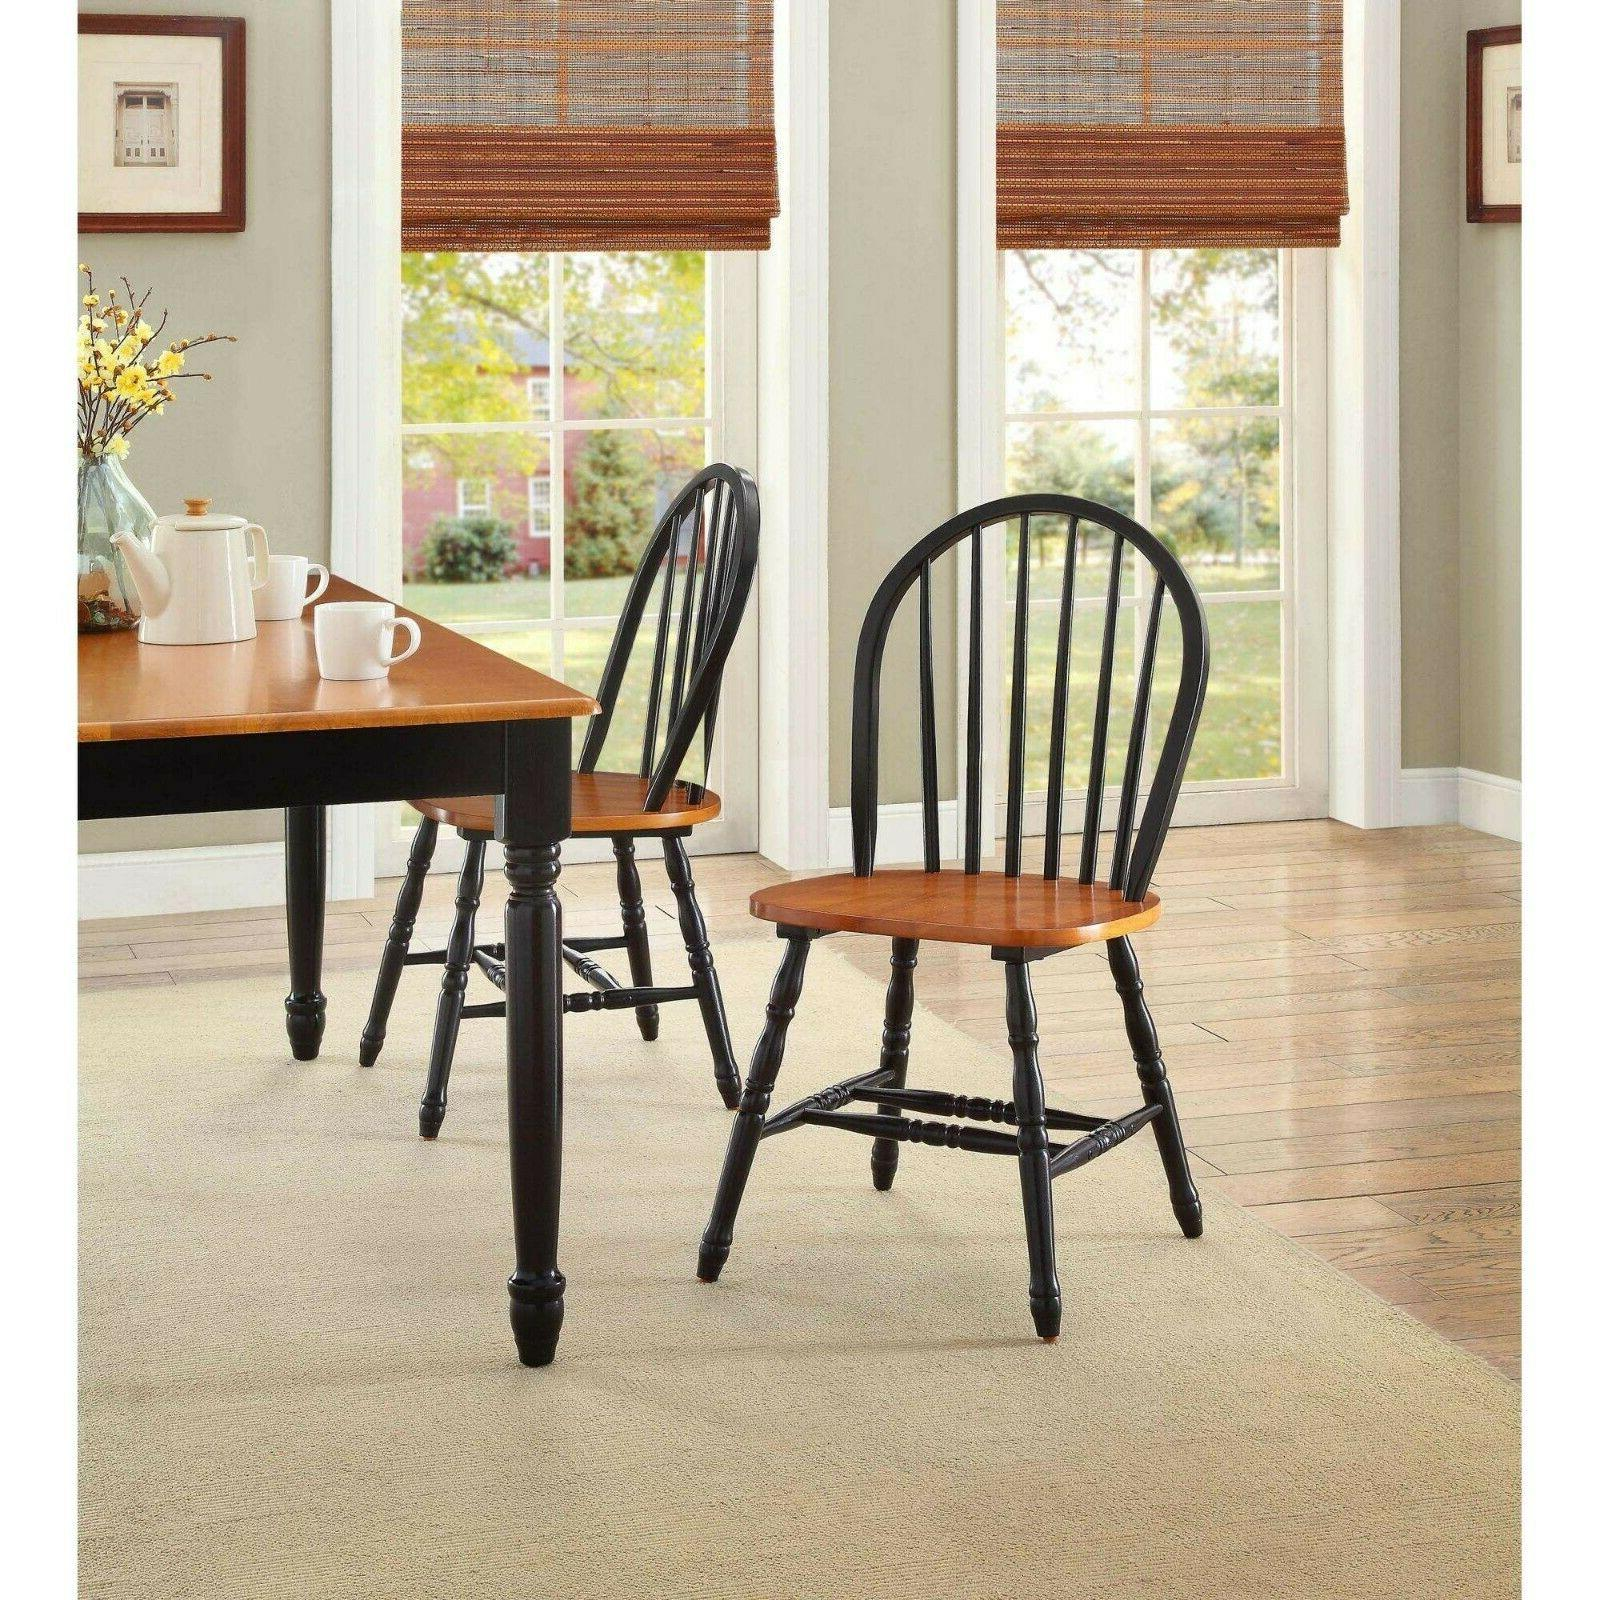 Dining Room Table For 6 Farmhouse Wood Kitchen Chairs